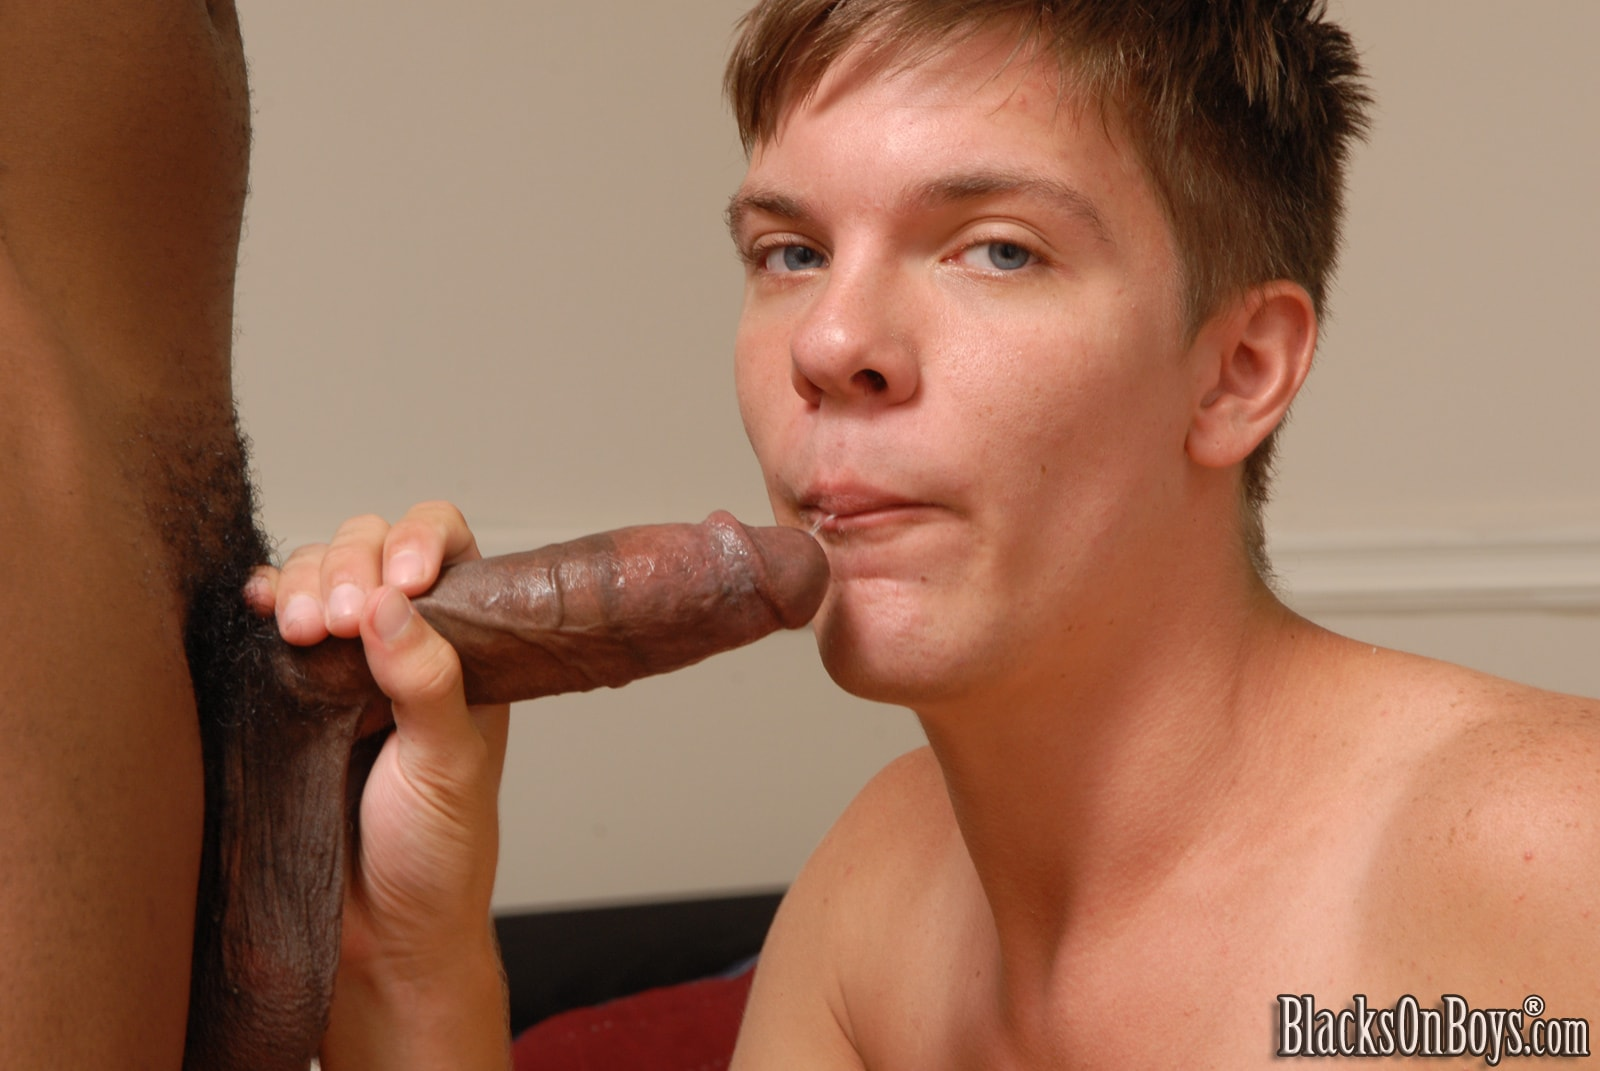 Dogfart Men 'and Black Lion - Blacks On Boys' starring Jordan Pierce (Photo 13)